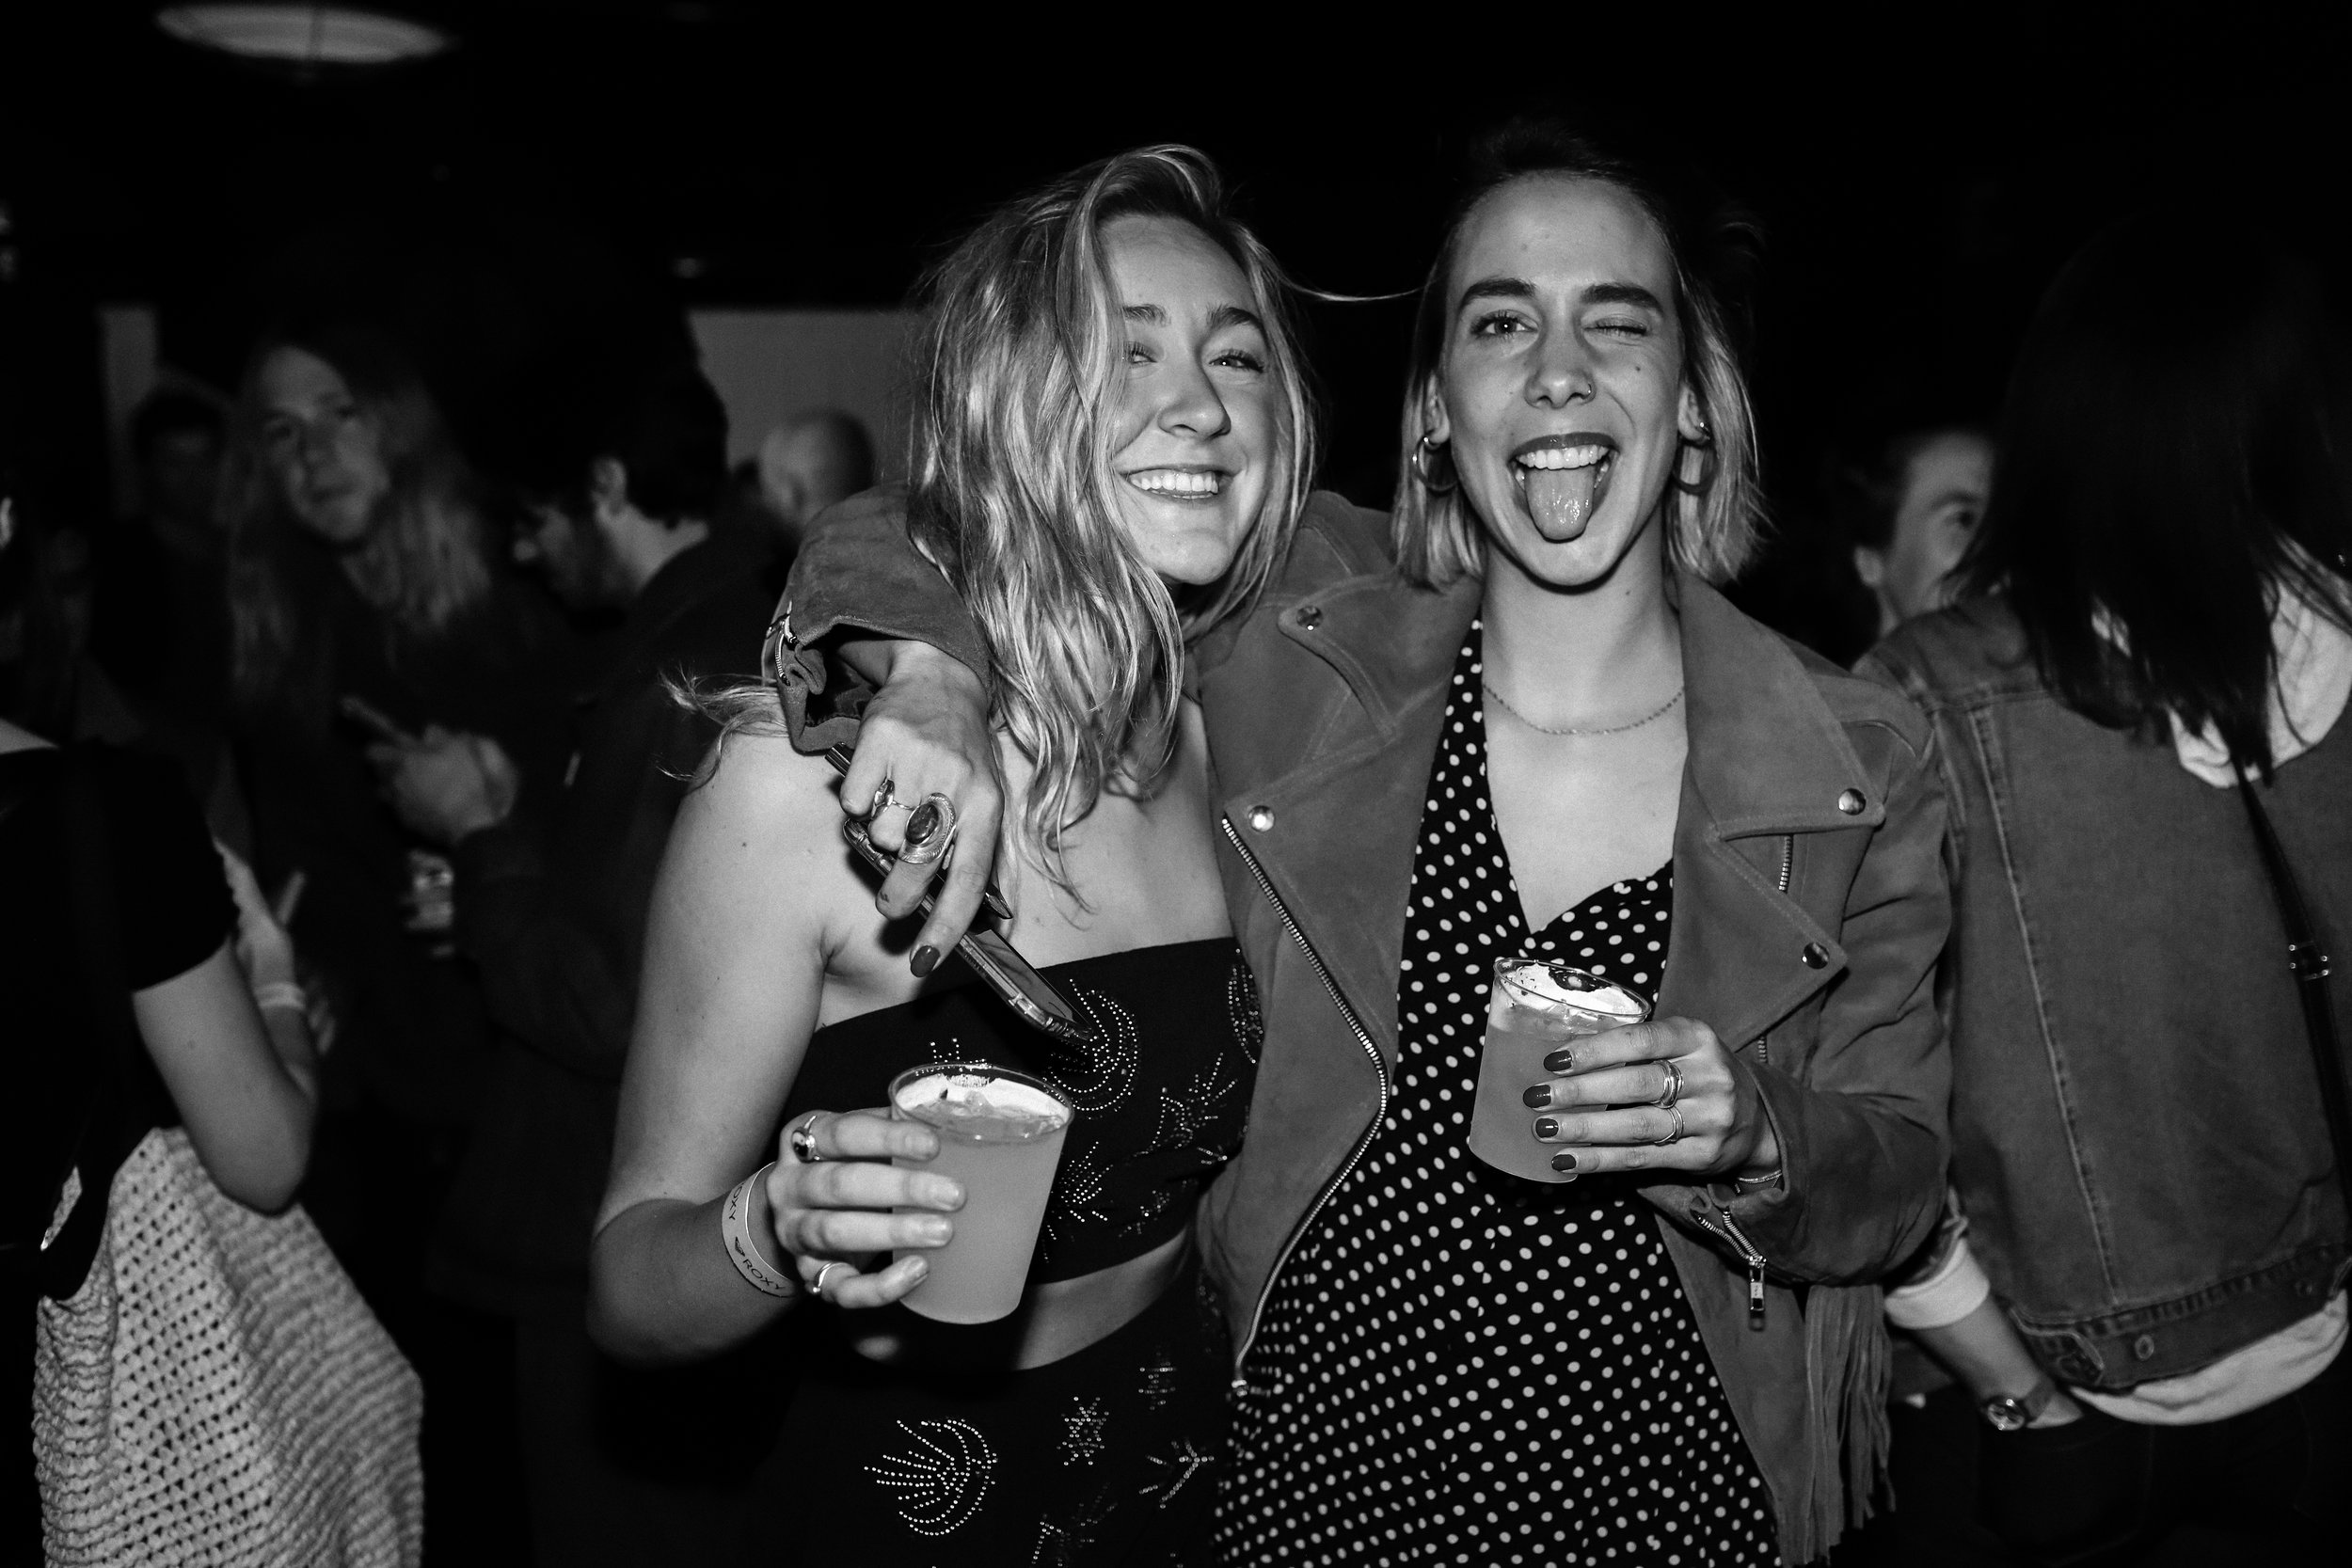 Issue_004_Party-14.jpg